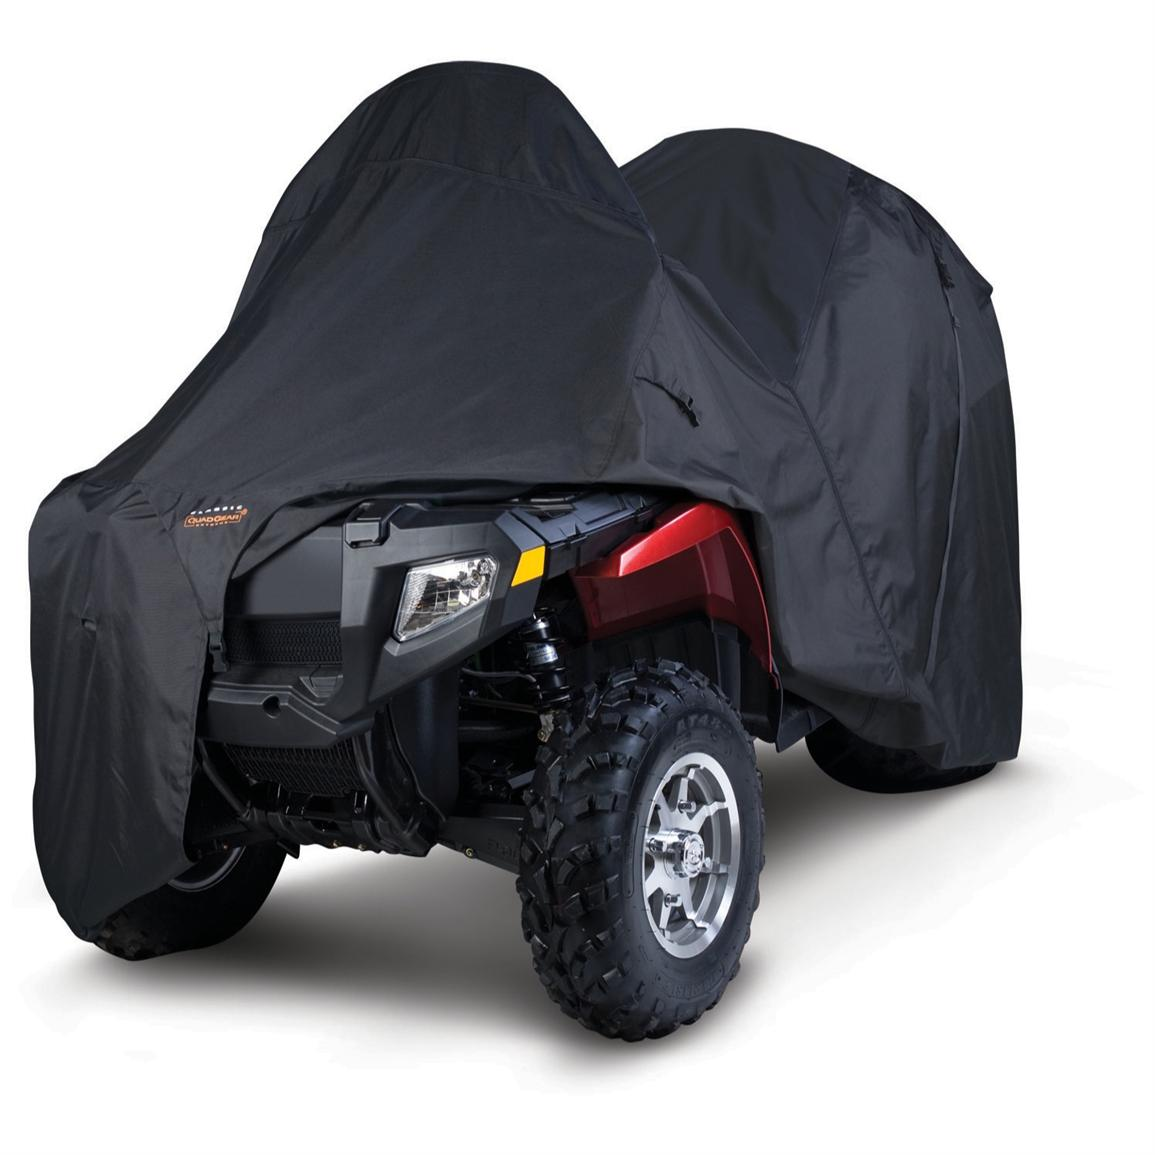 Classic Accessories™ Expandable 1 or 2-Up ATV Cover